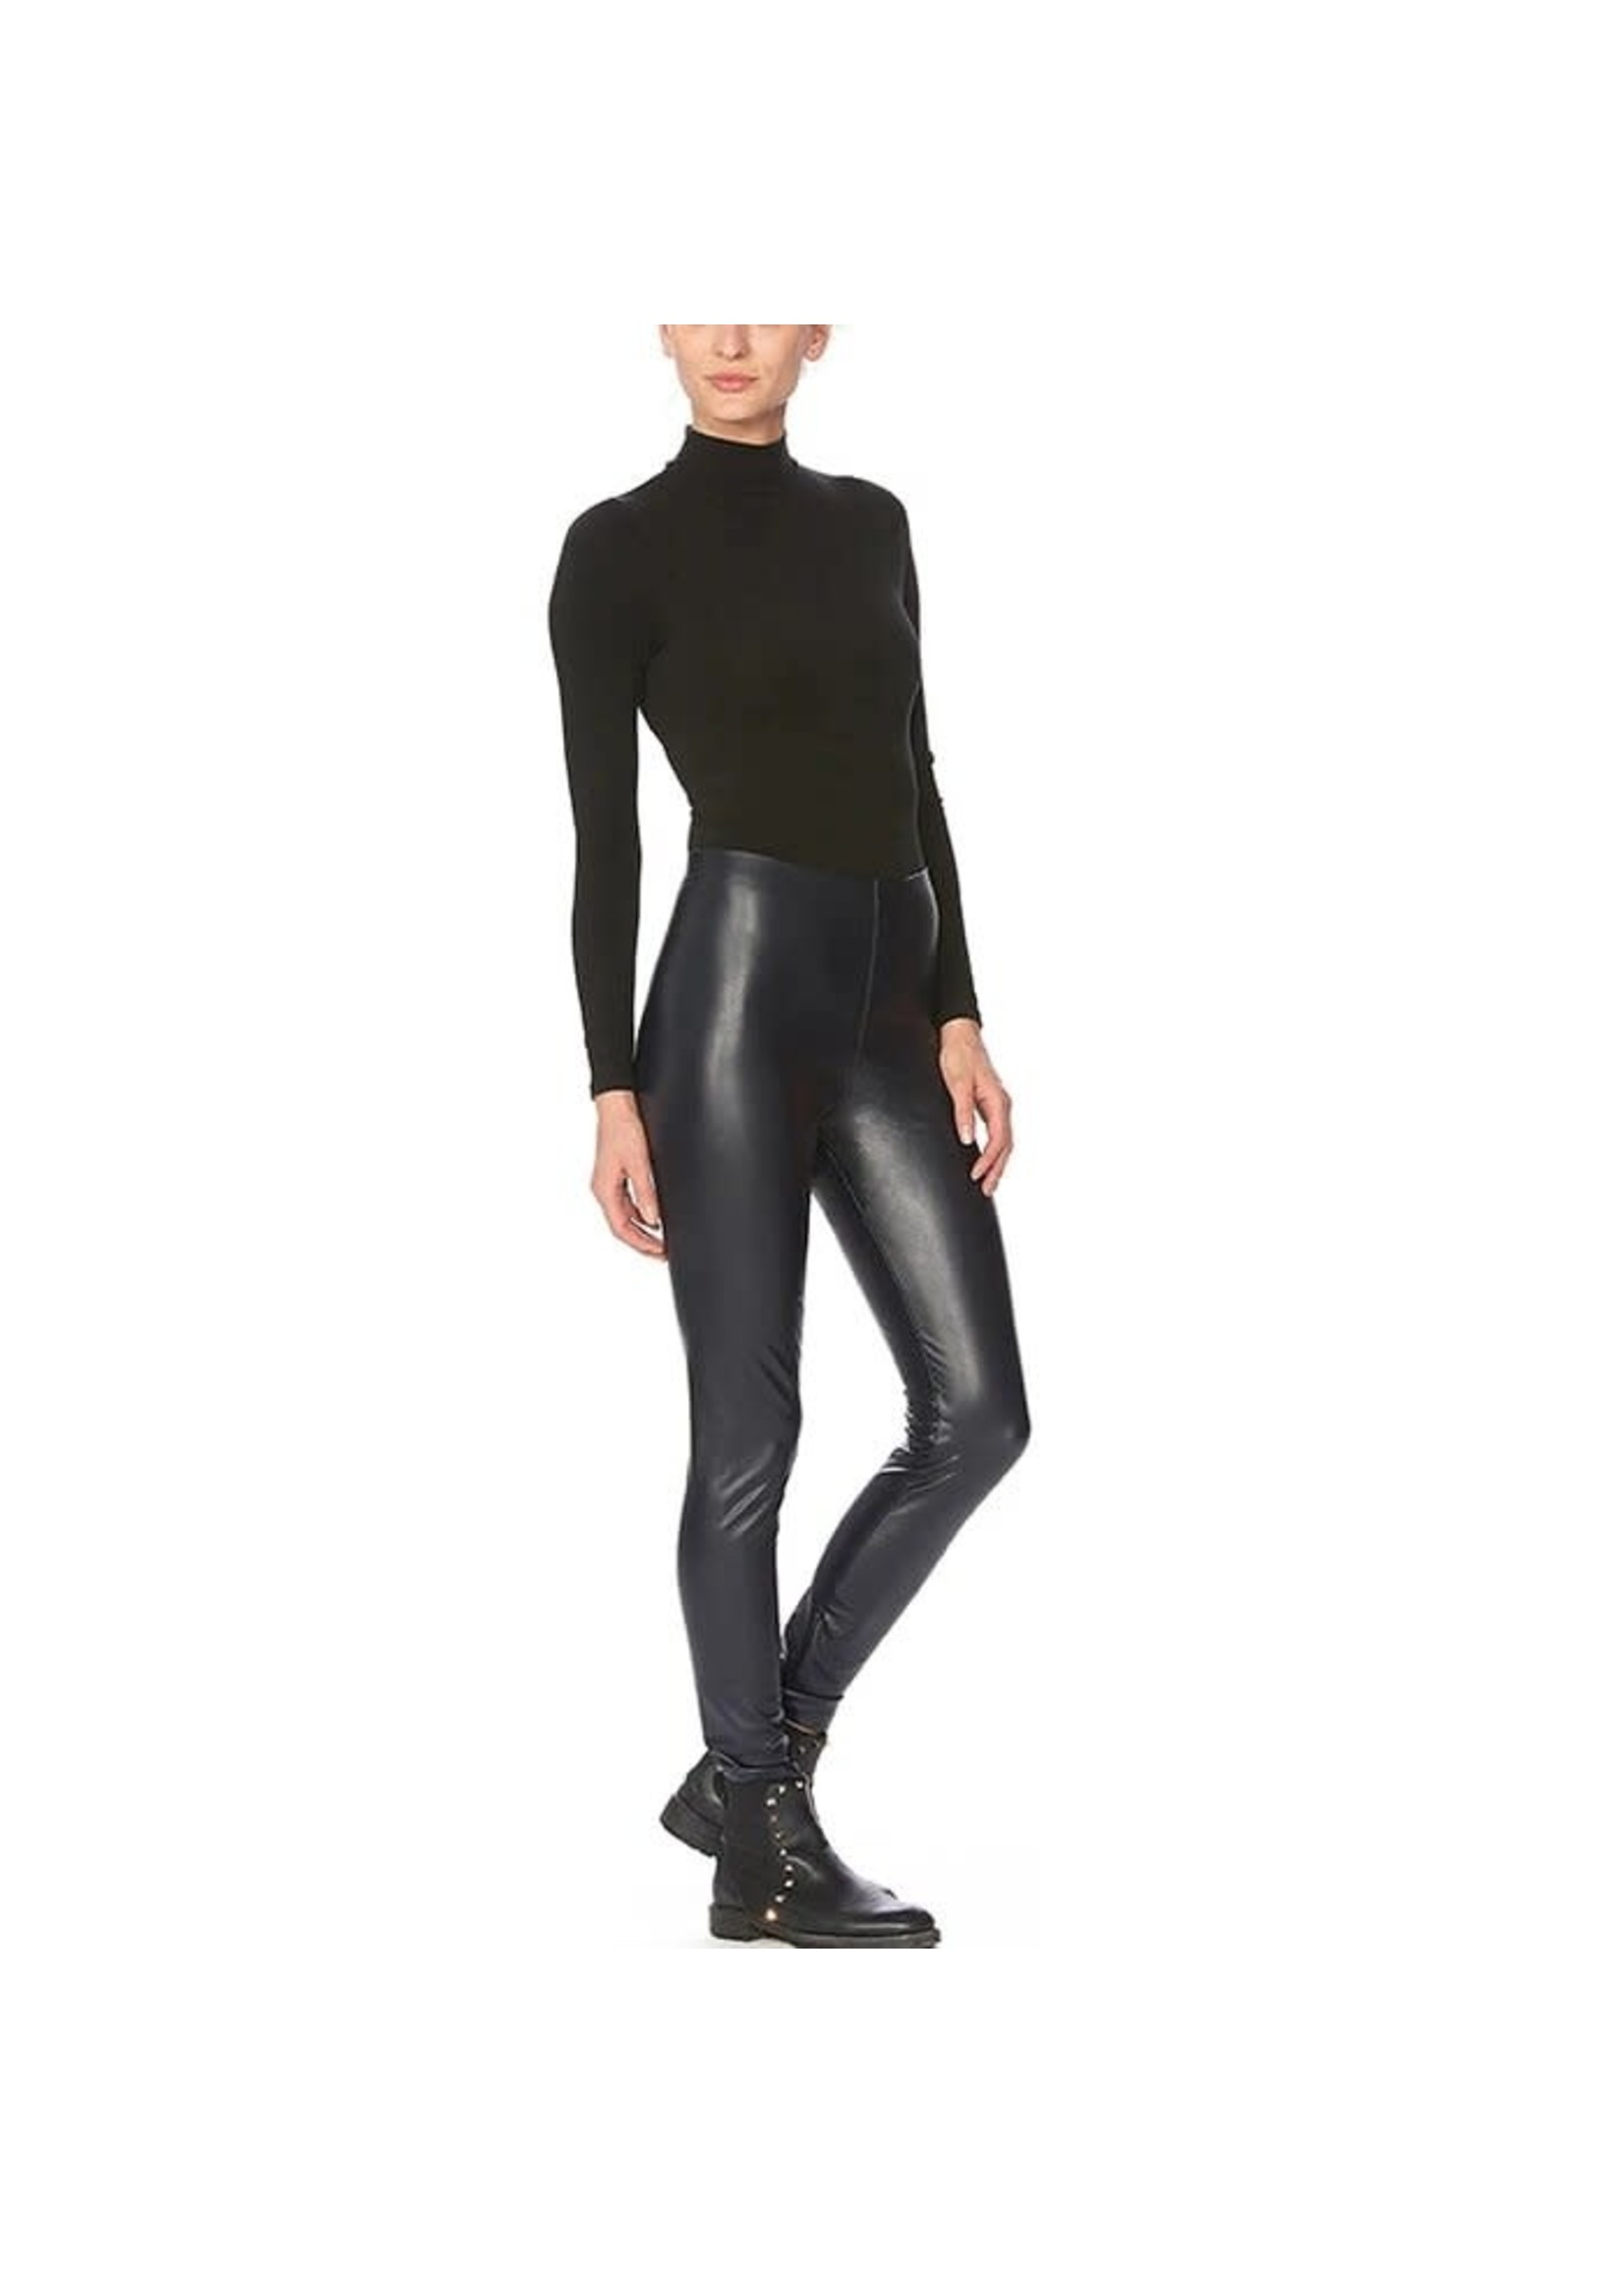 Hue Super Sleek Leatherette Legging